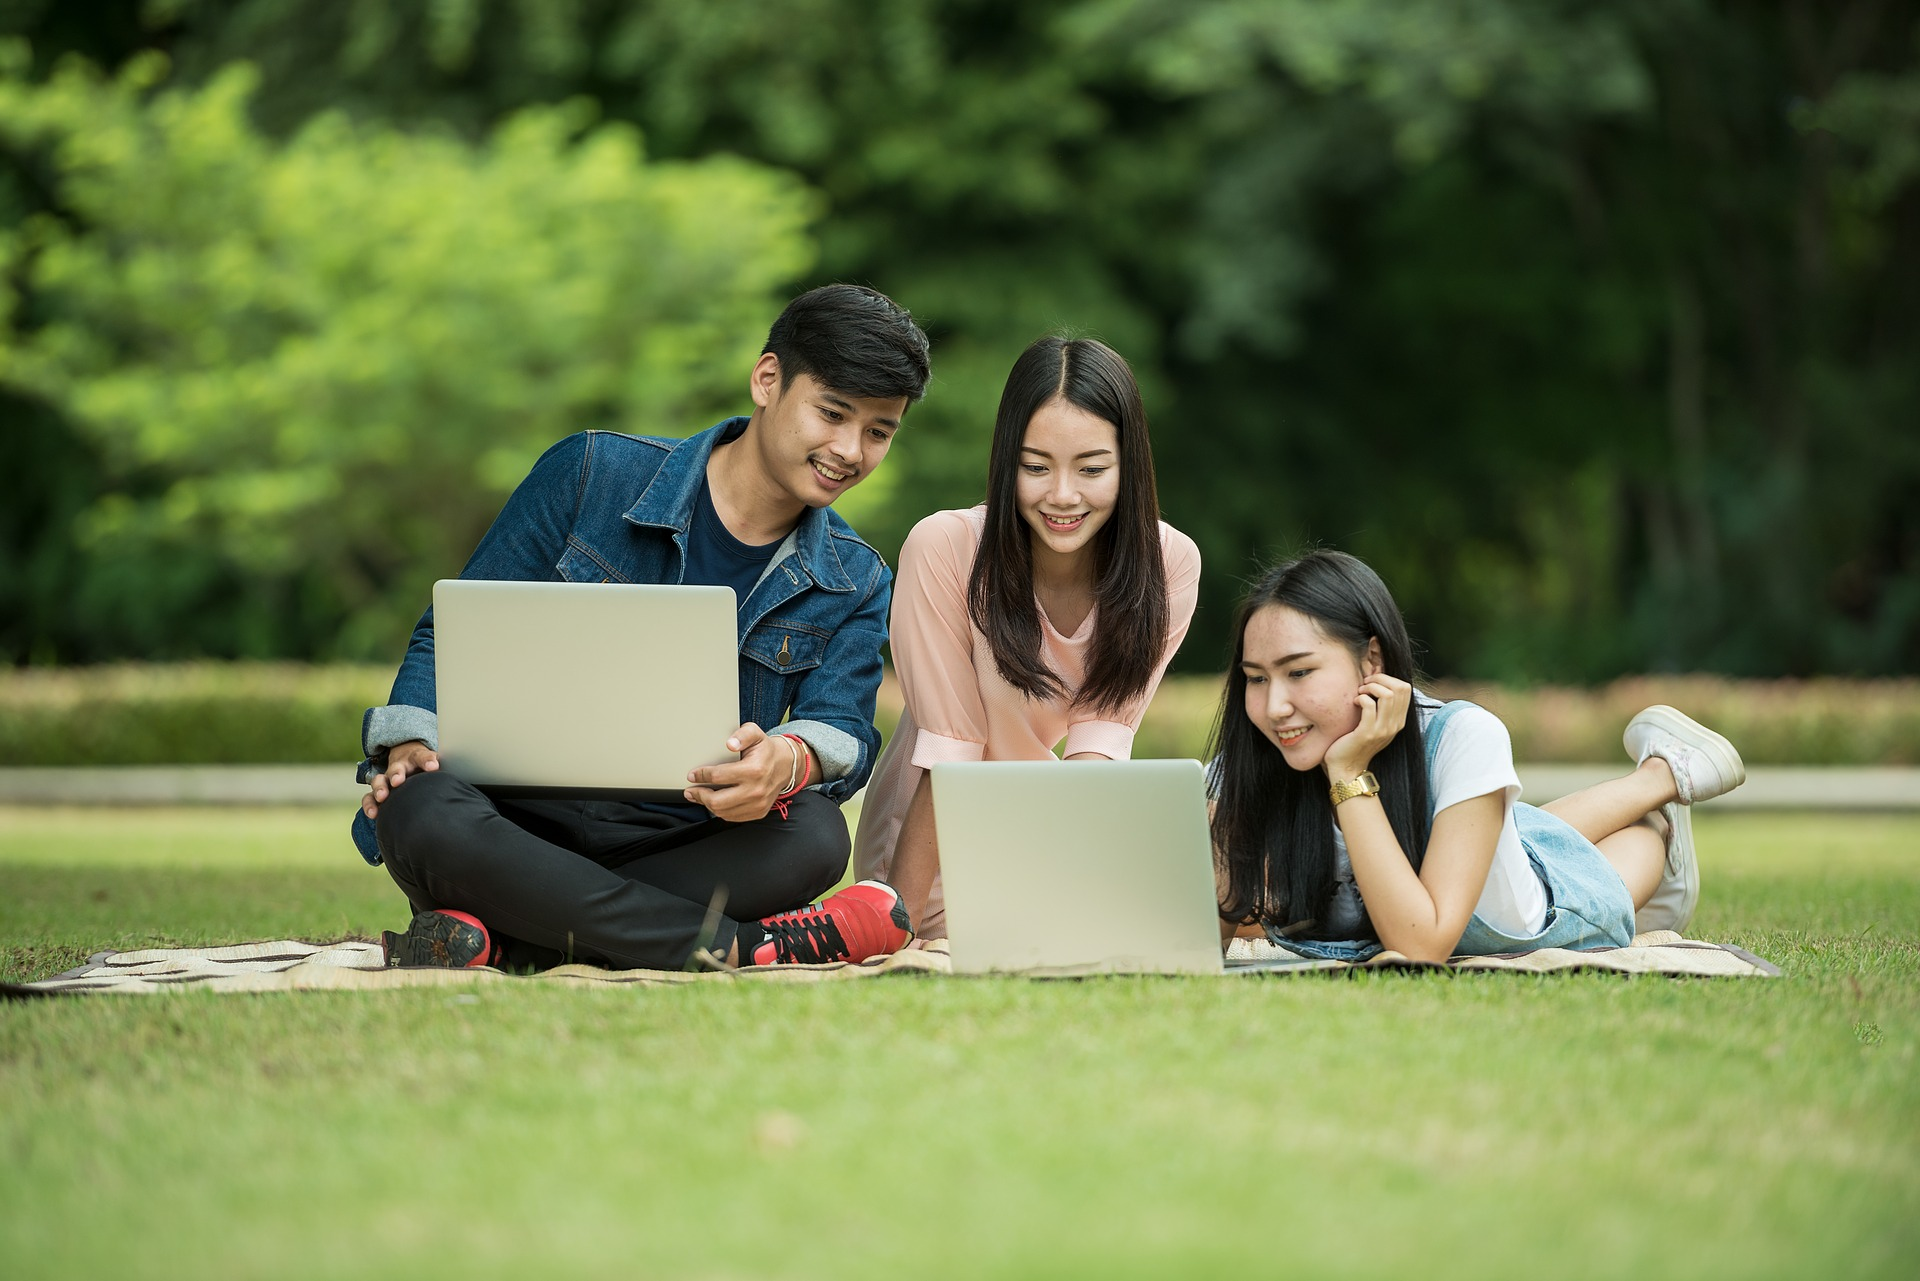 International Education Strategy aims to Boost Number of Overseas Students in UK